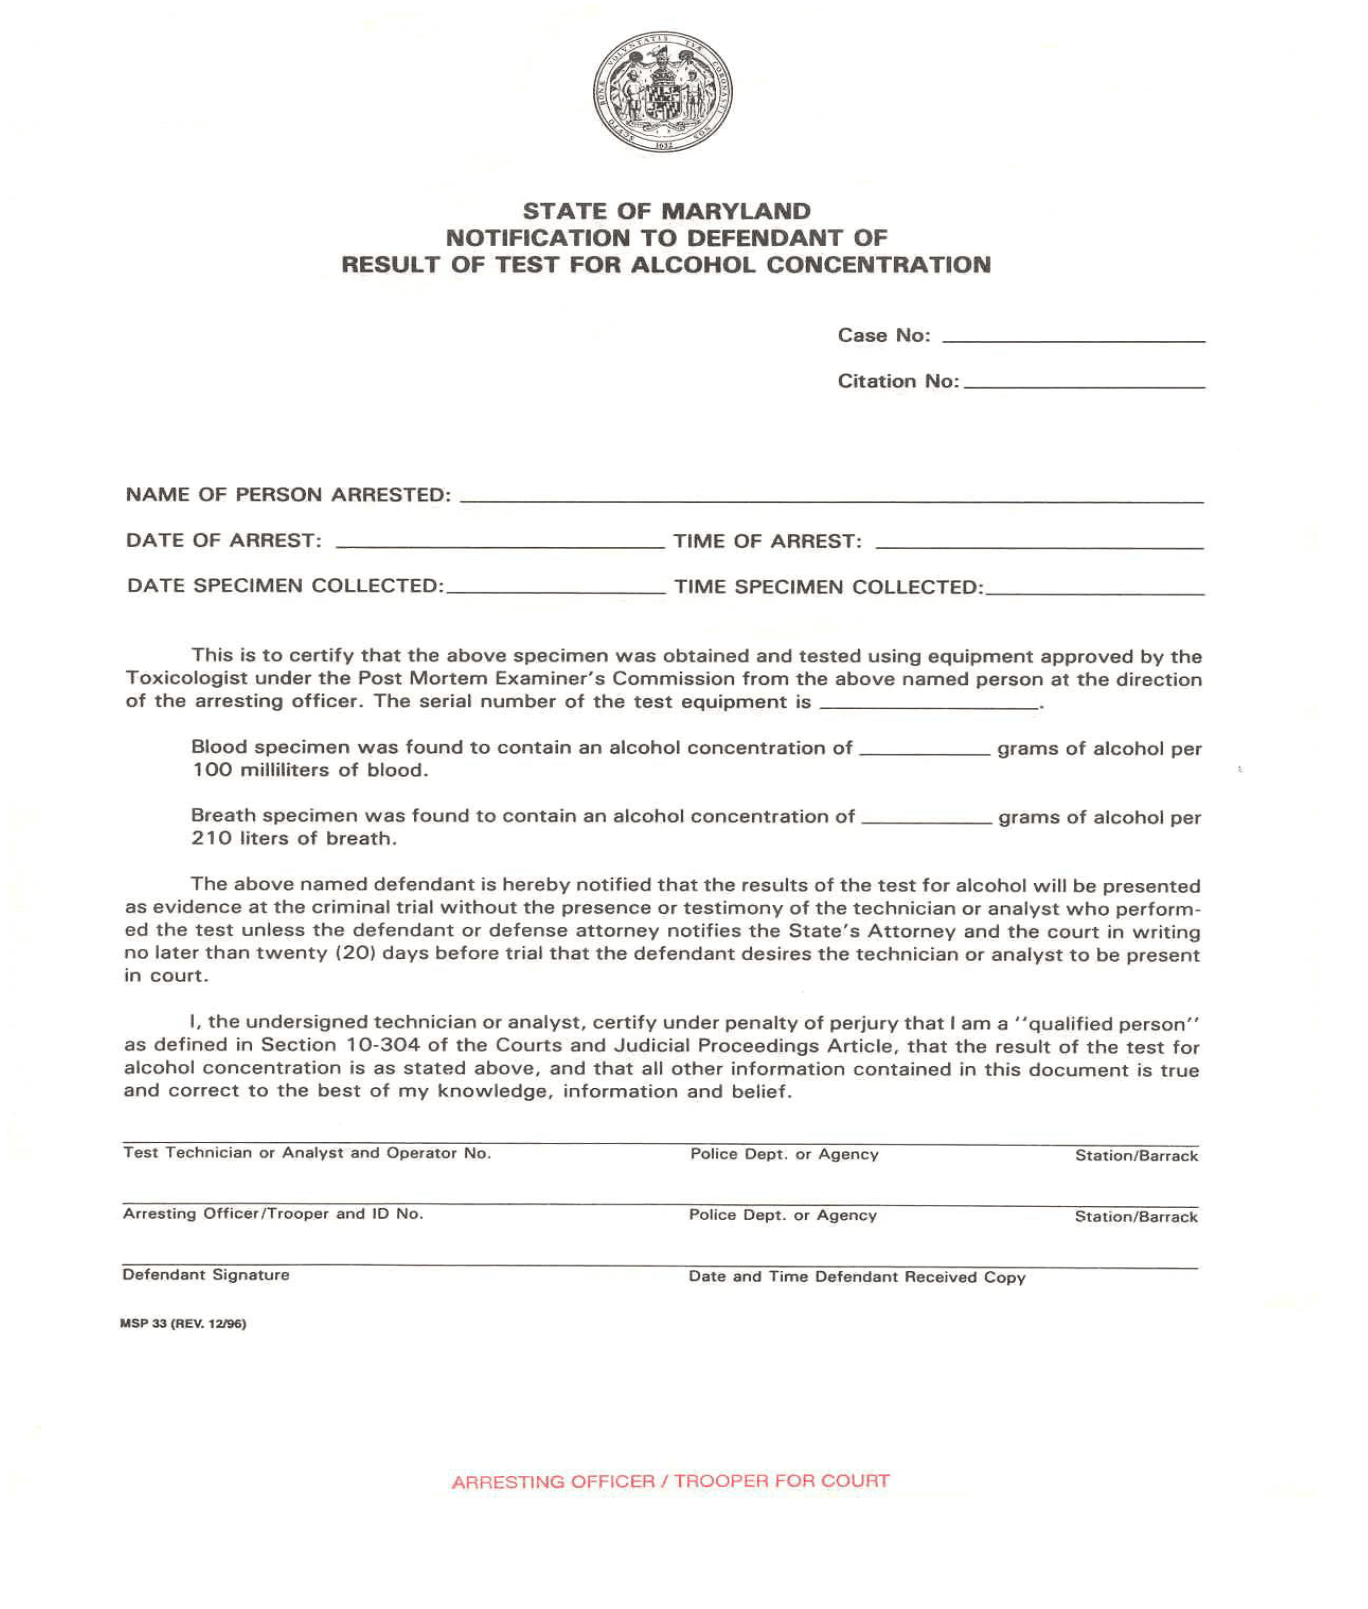 Notification to Defendant of Result of Test for Alcohol Concentration